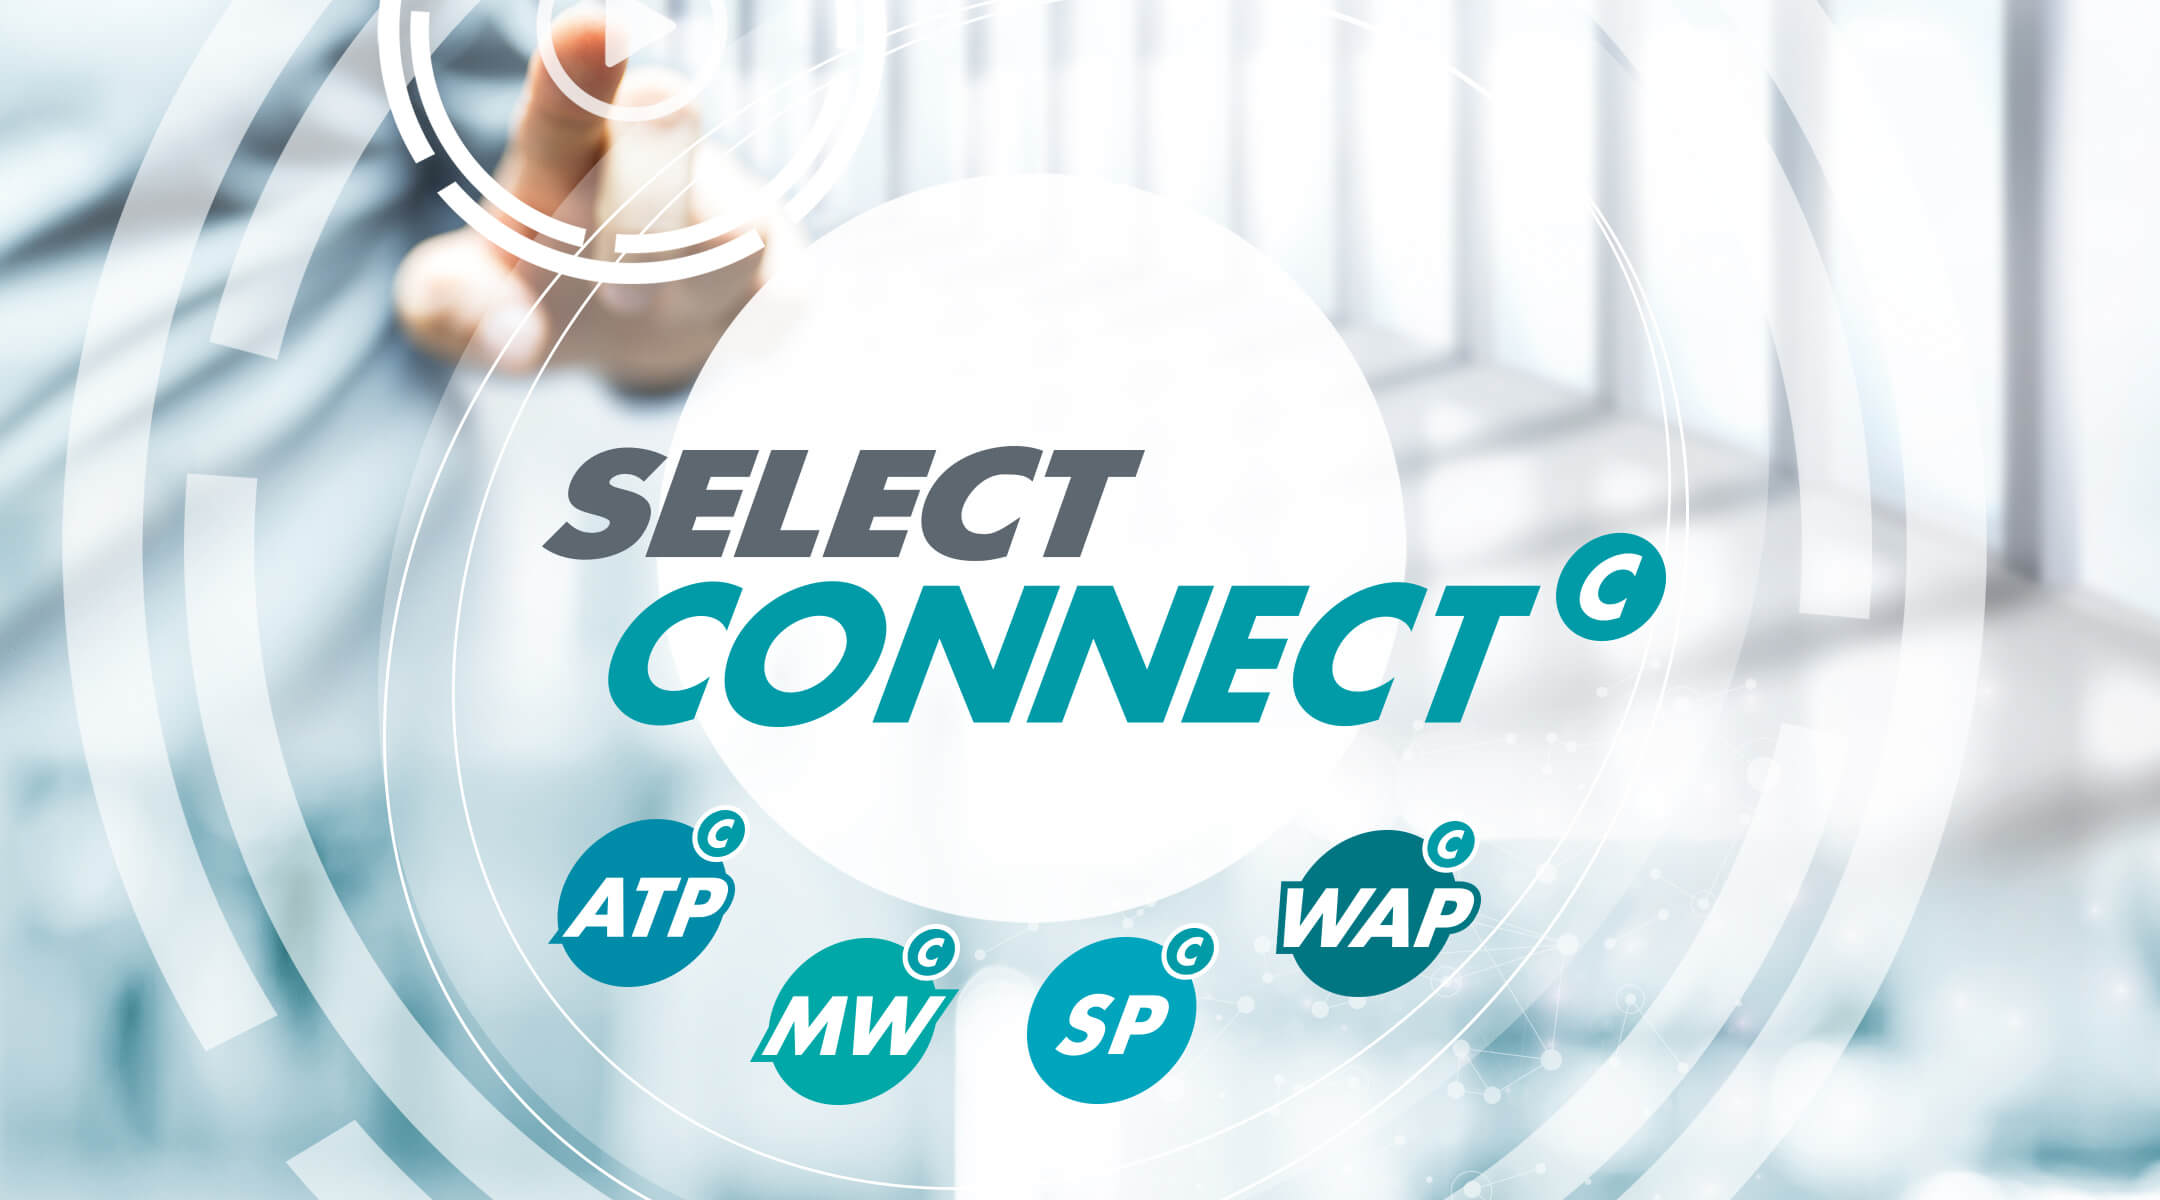 Select Connect